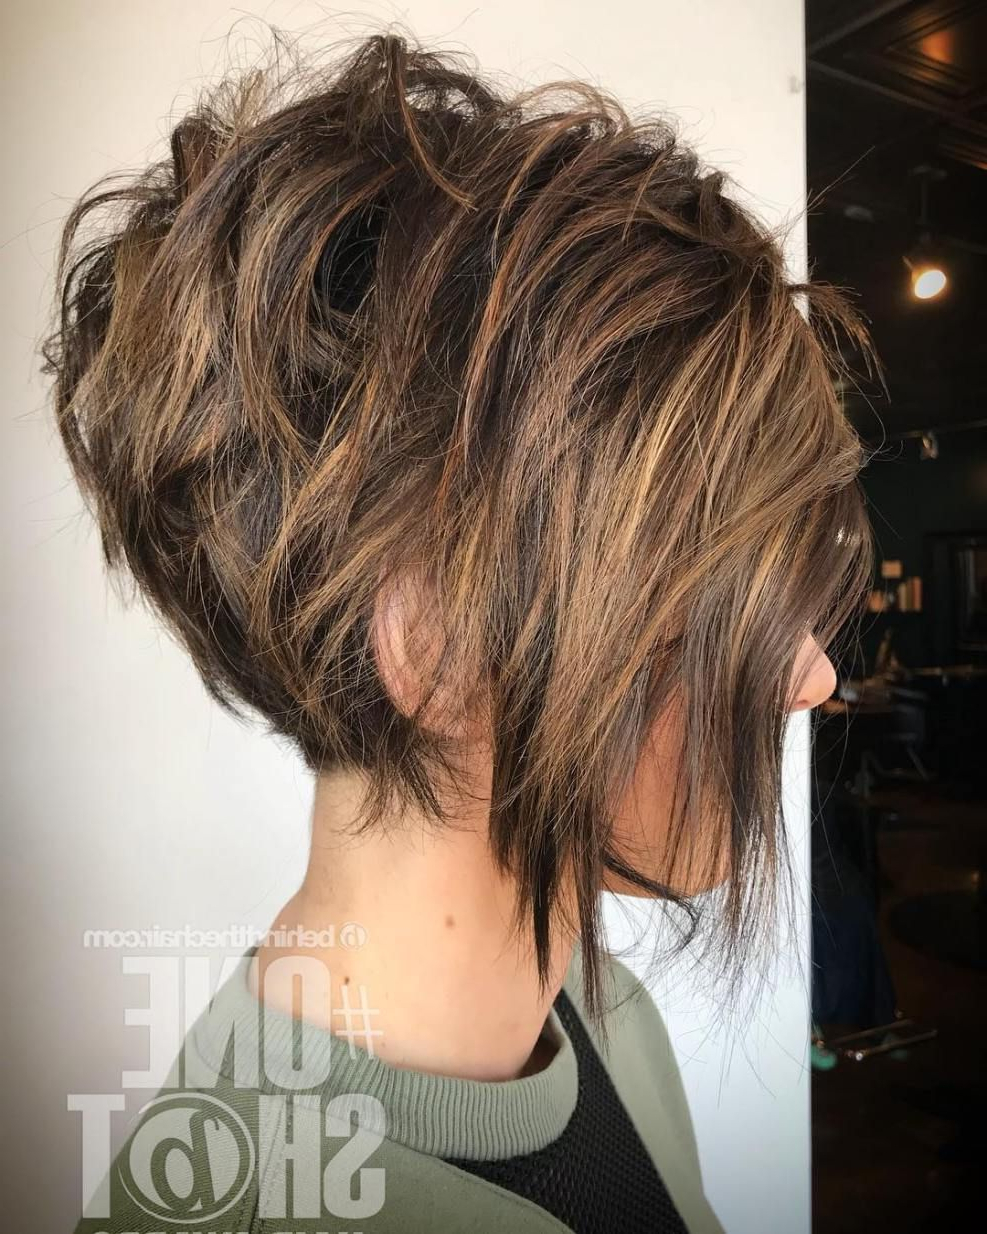 60 Short Shag Hairstyles That You Simply Can't Miss In 2019 Intended For Bronde Bob Shag Haircuts With Short Back (View 2 of 20)